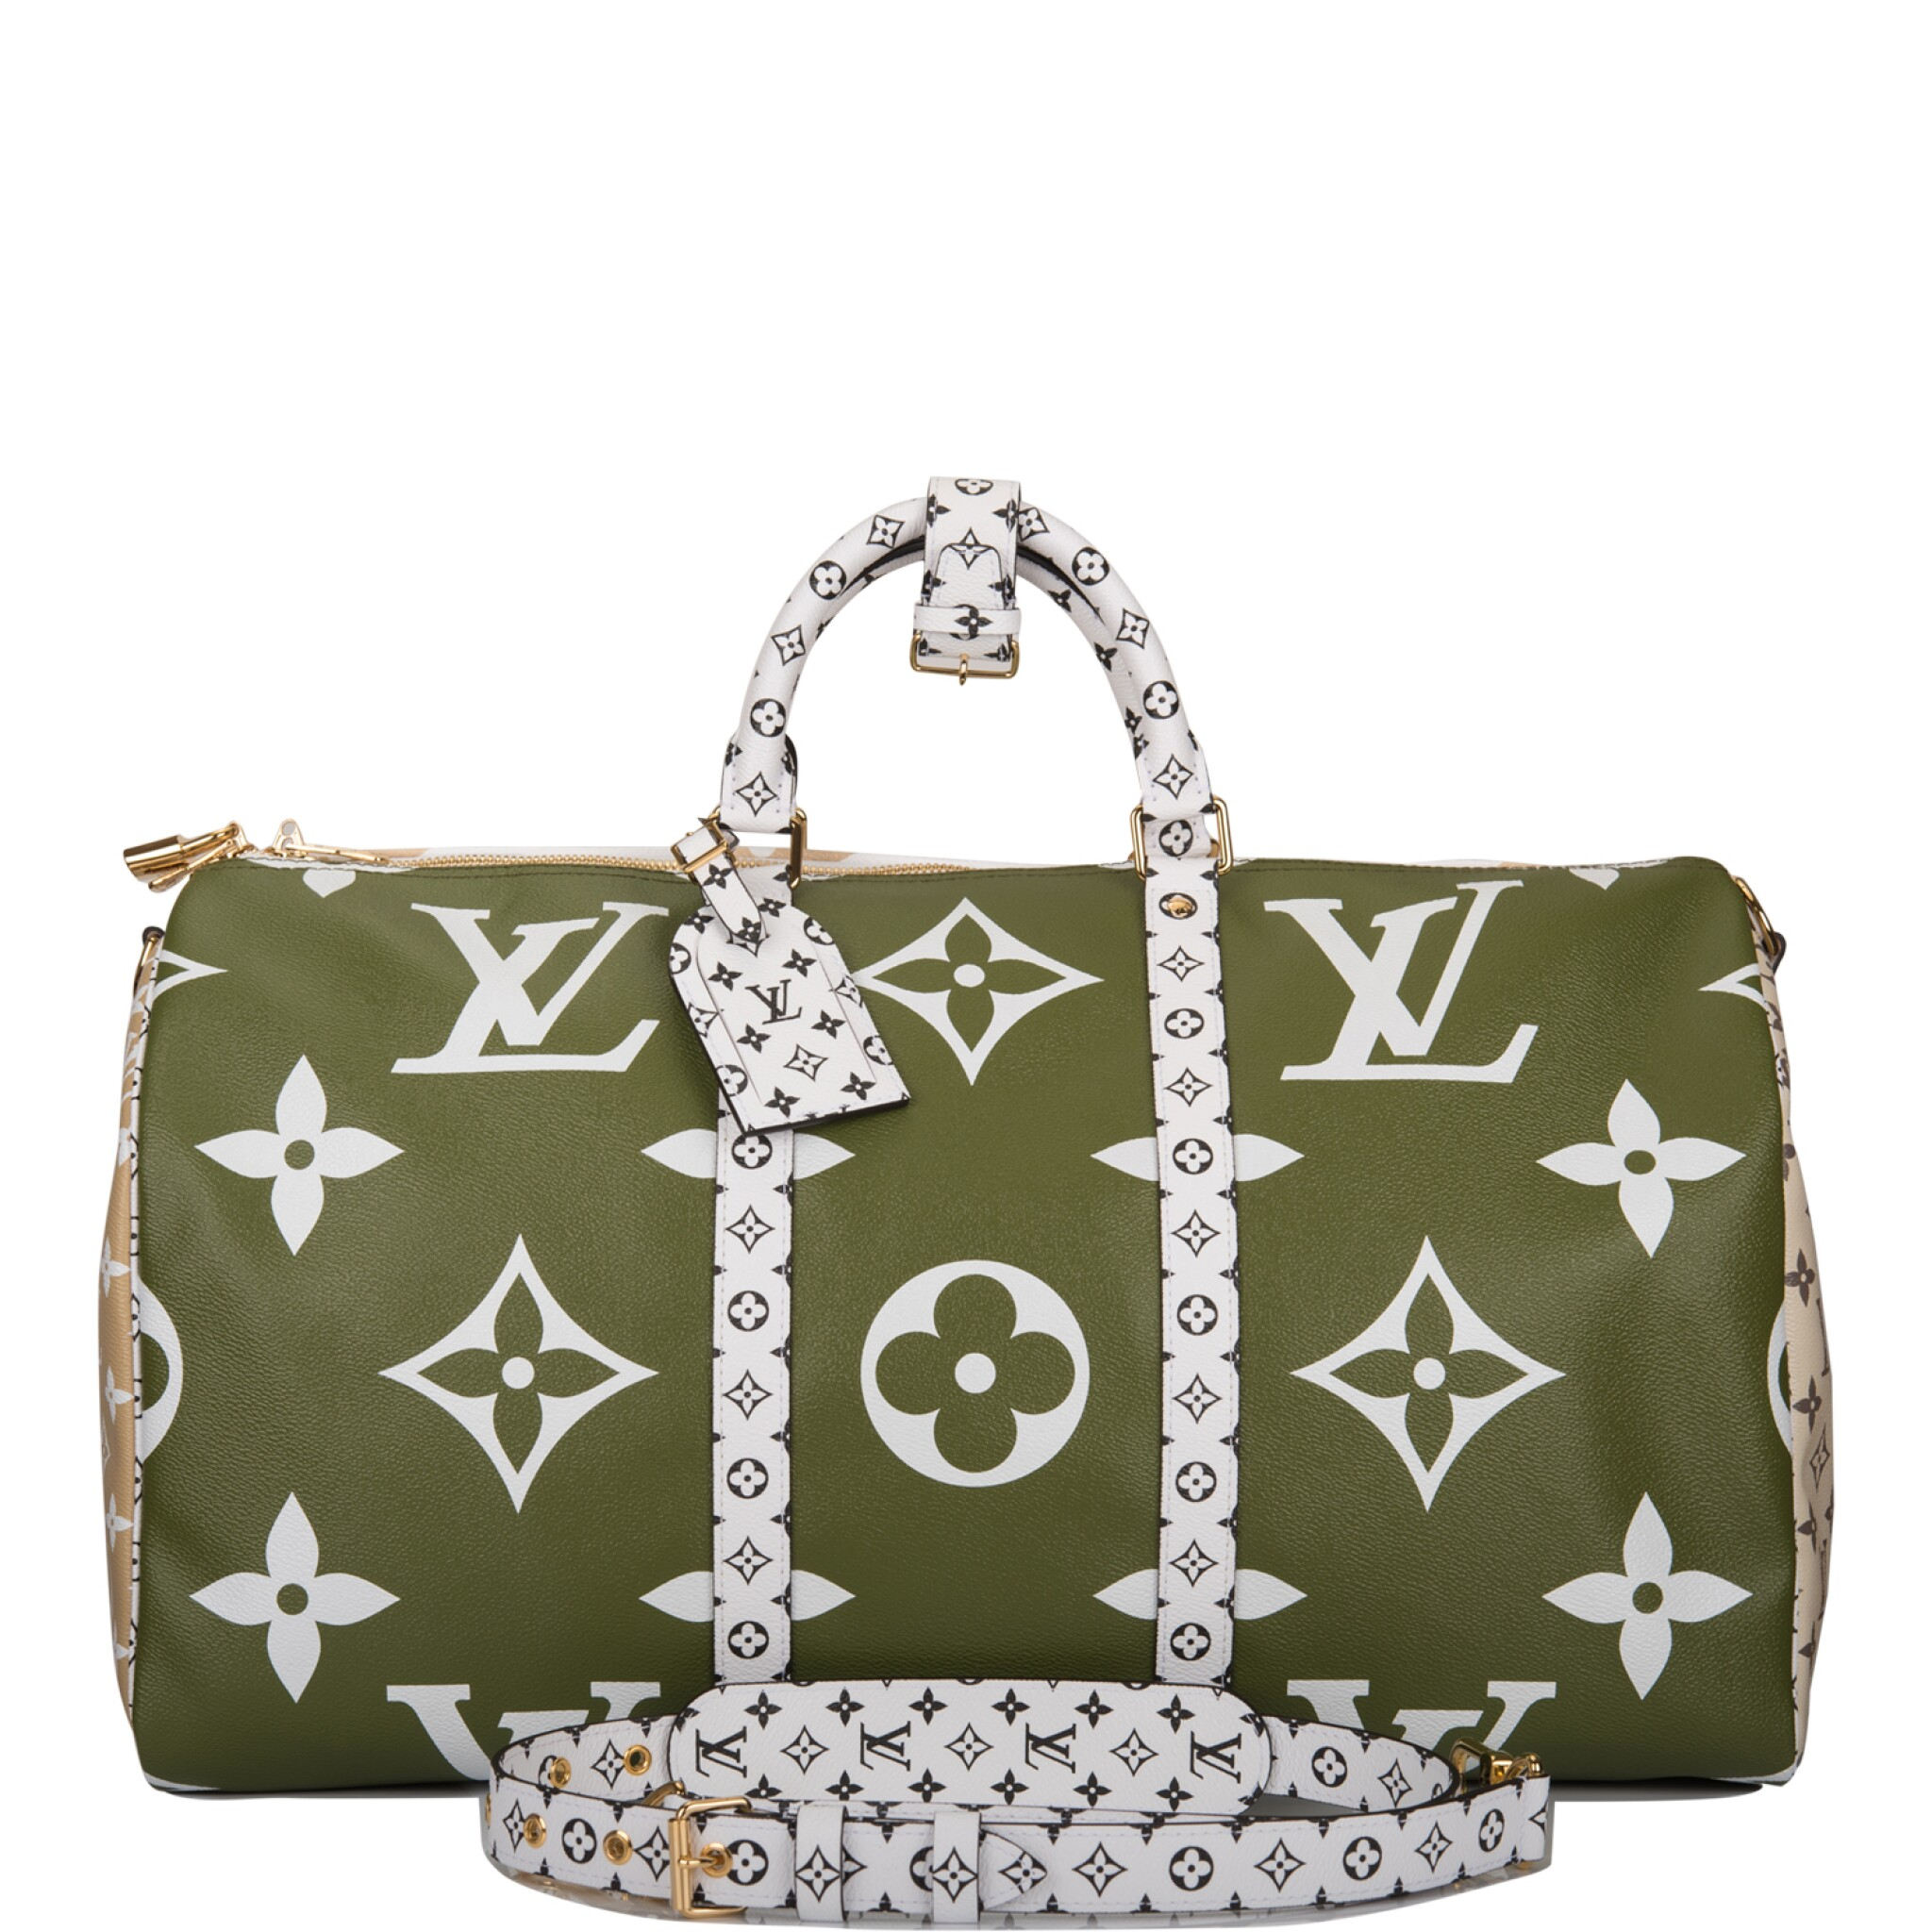 View full screen - View 1 of Lot 121. Louis Vuitton Khaki Green Keepall Bandoulière 50 of Giant Monogram Canvas with Polished Brass Hardware .